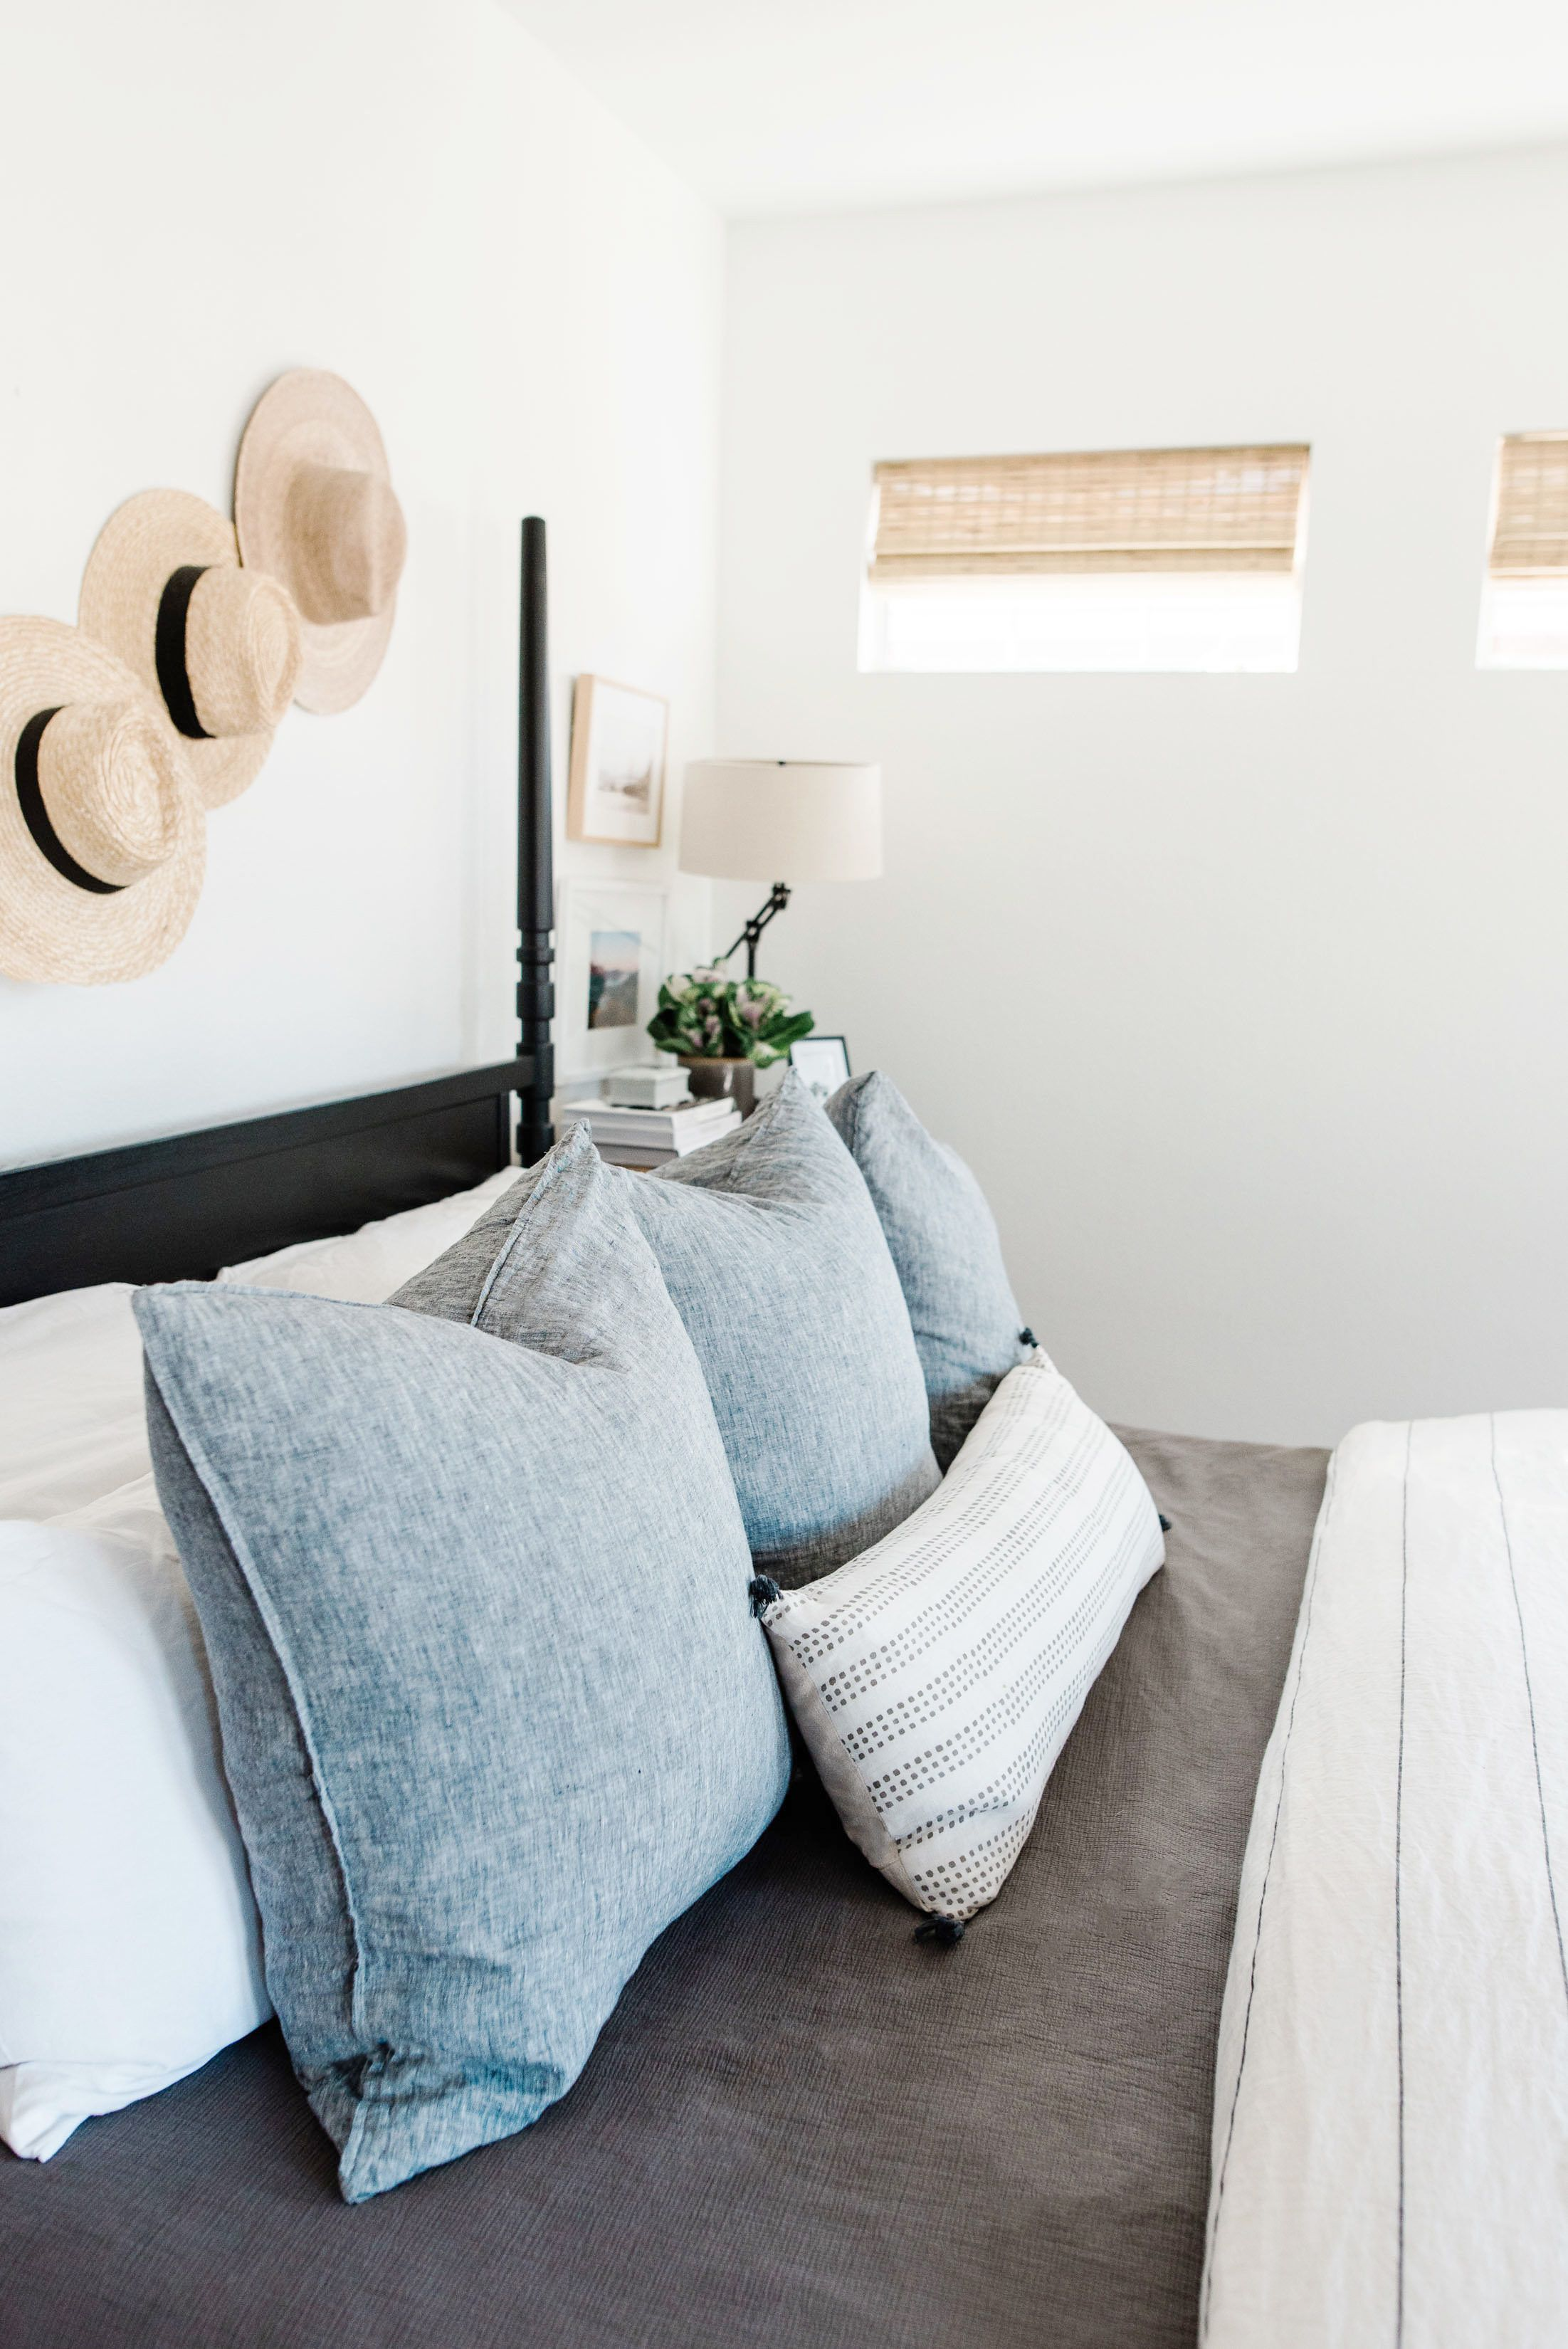 Step Inside an Austin Home That Pairs Cozy Neutrals With ...